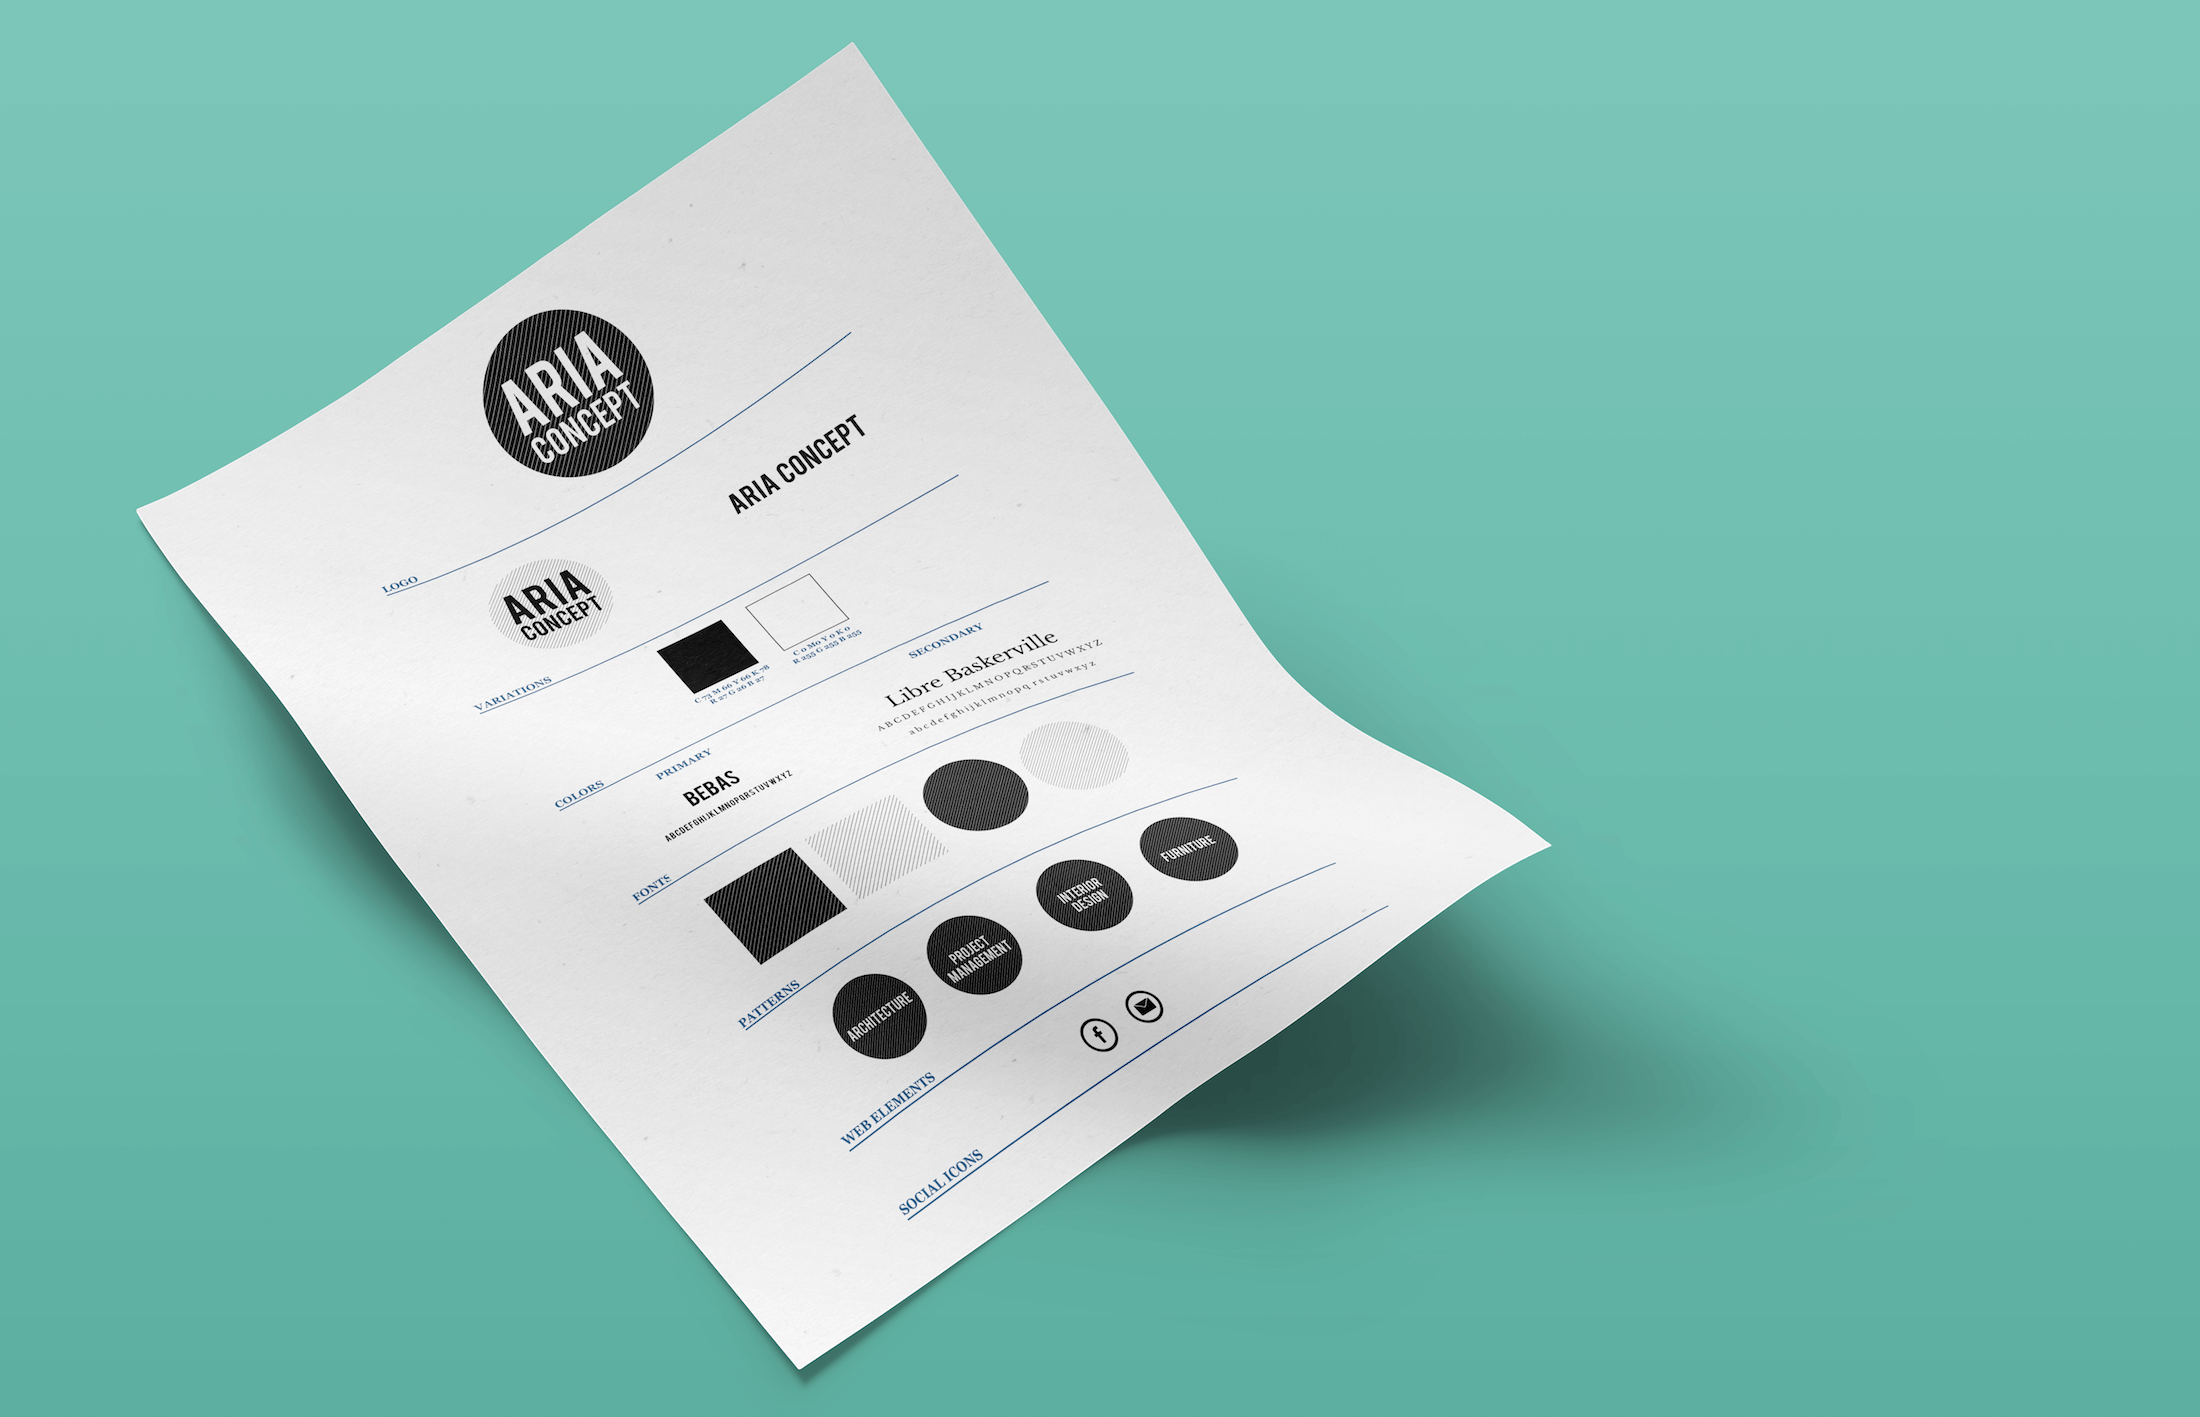 Aria Concept Branding Style Guide